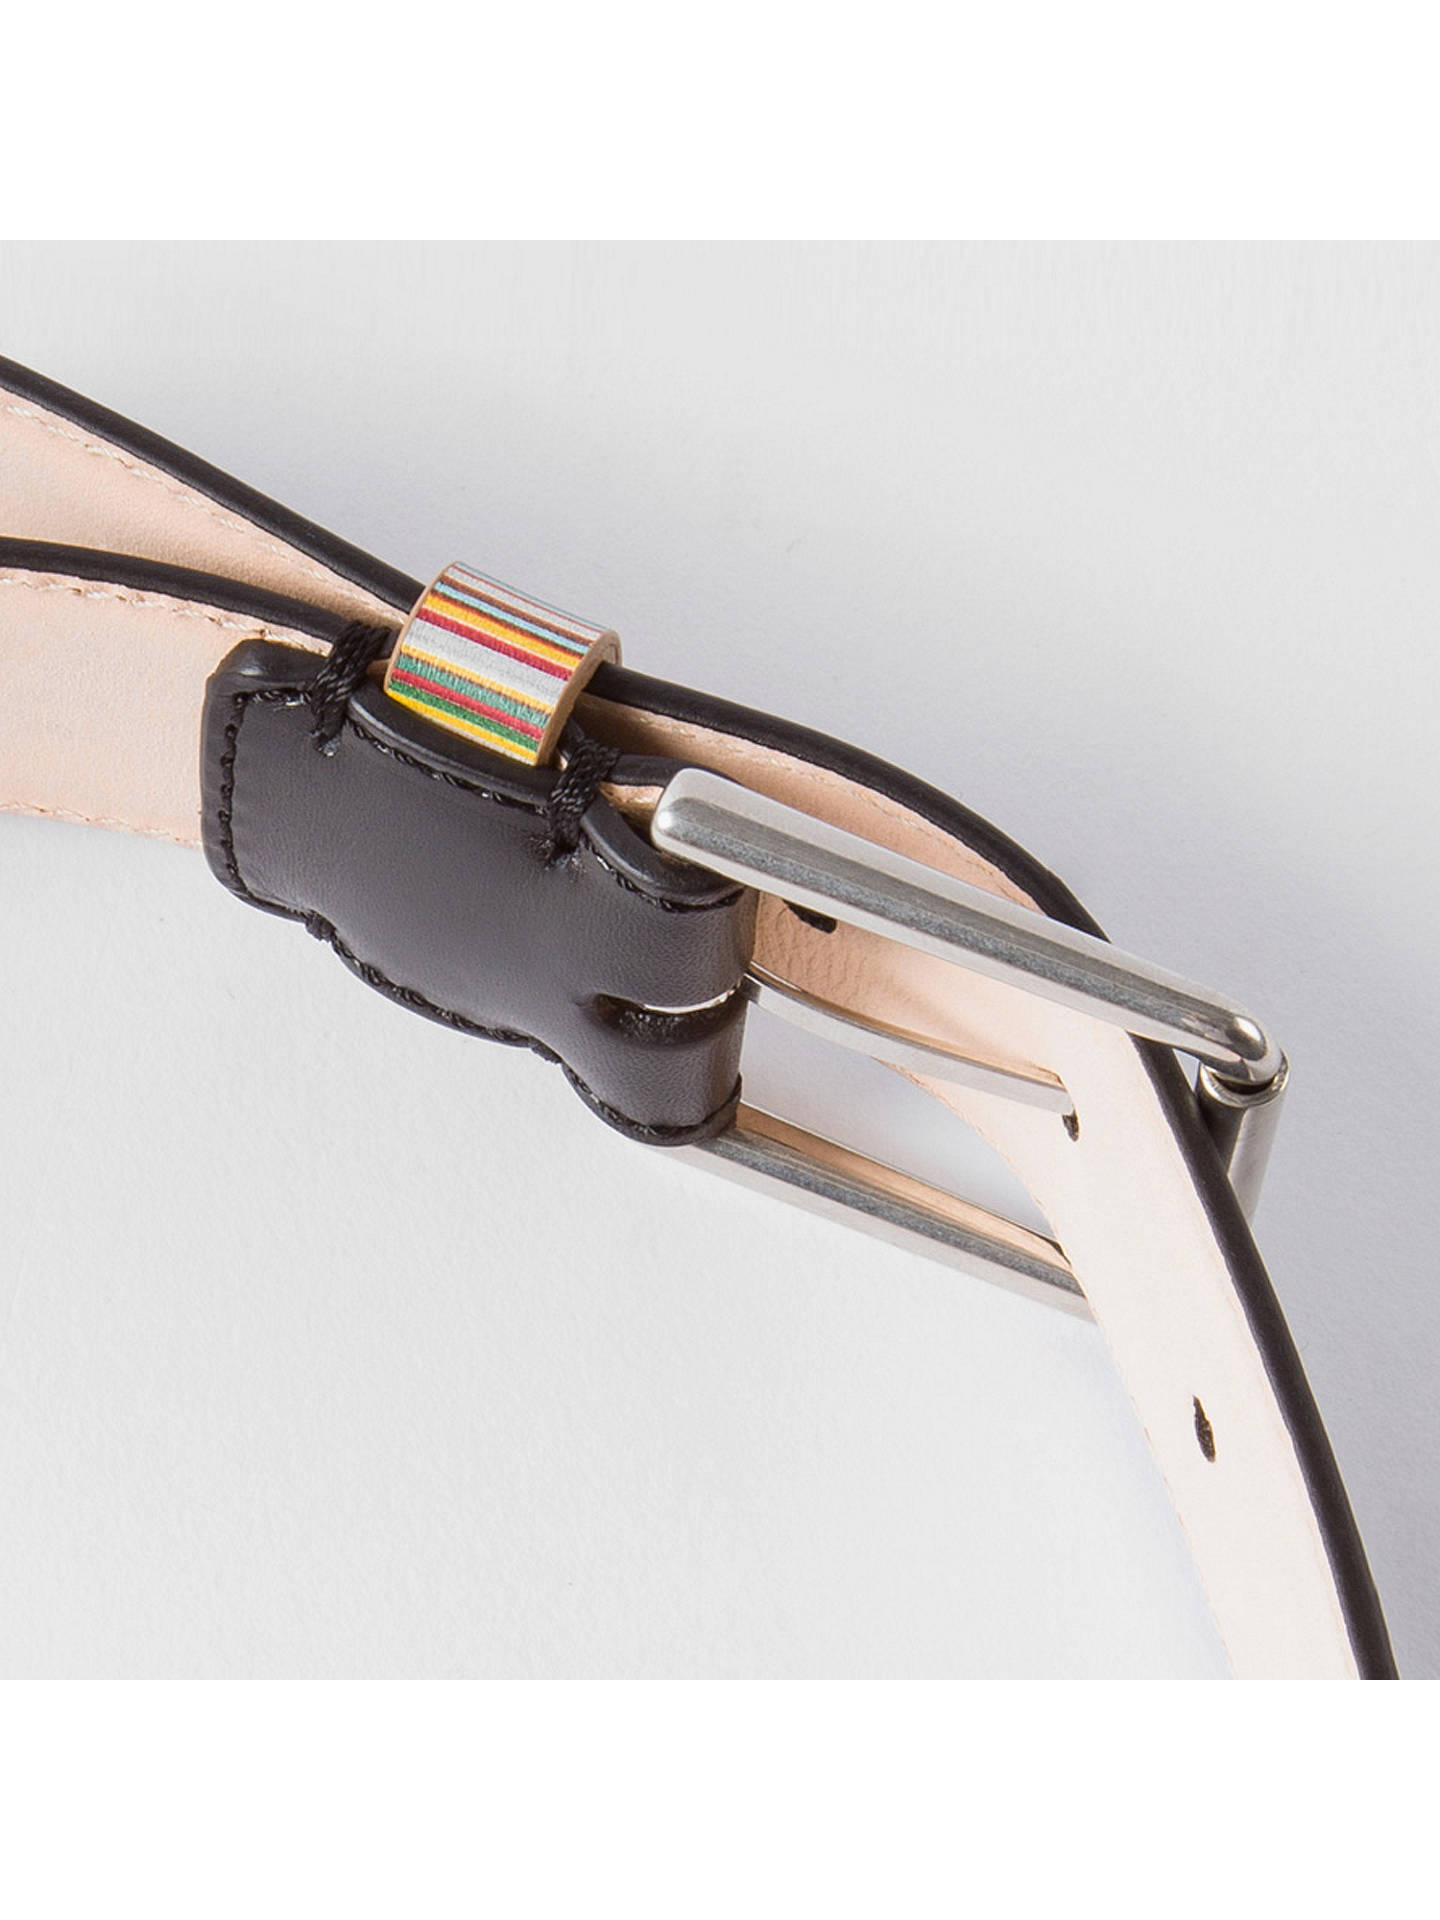 8746089fc11c7 ... Buy Paul Smith Signature Stripe Keeper Leather Belt, Black/Multi, S  Online at. Back to top